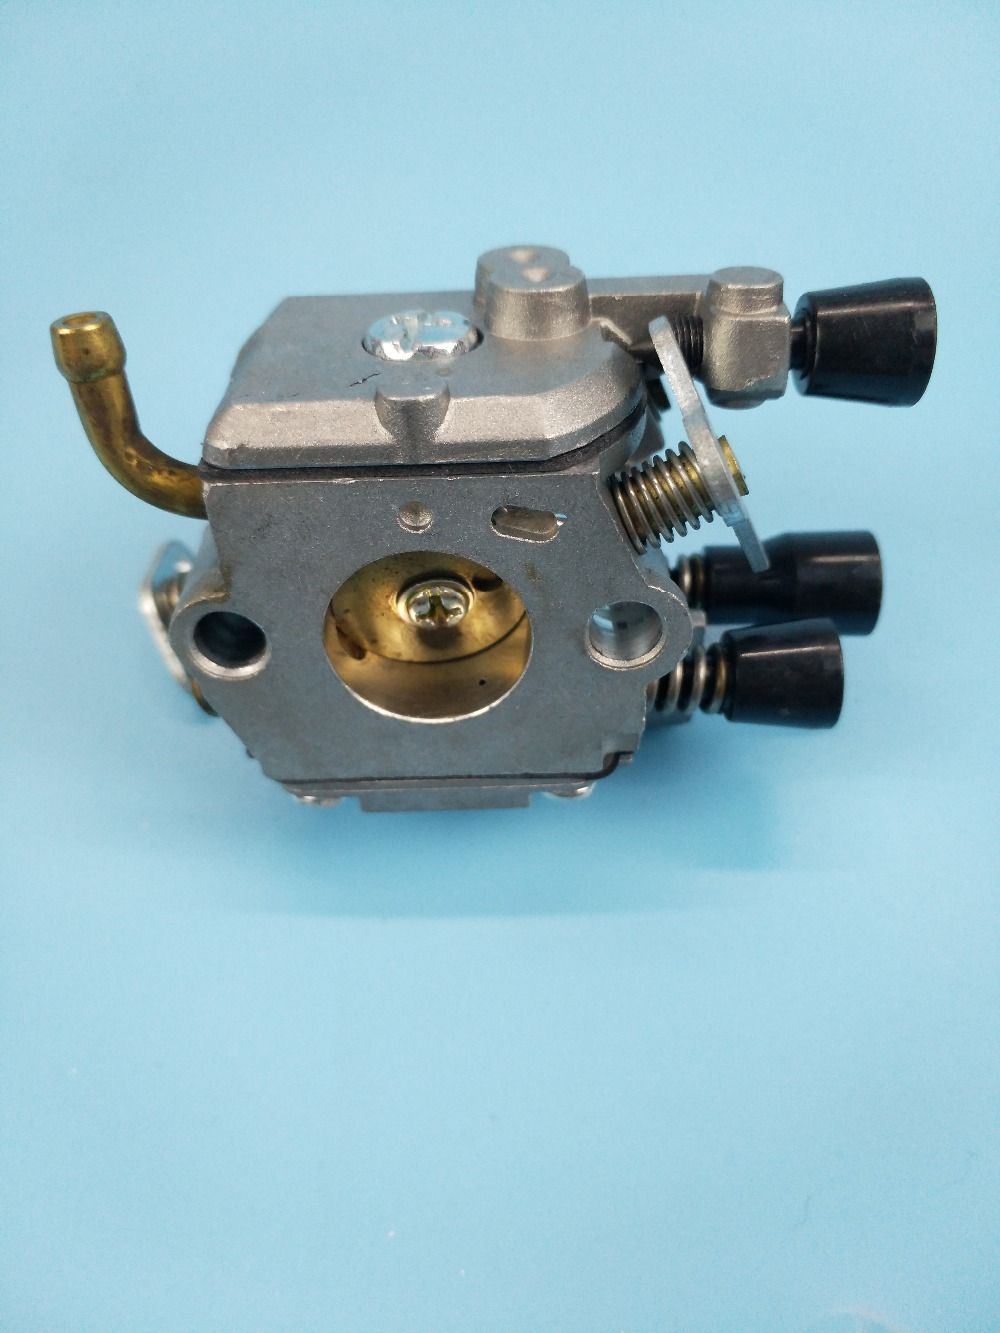 Carburetor For MS200 MS200T 020T Chainsaw ZAMA C1Q-S126B Carb New 2 Year Warranty & Free Shipping